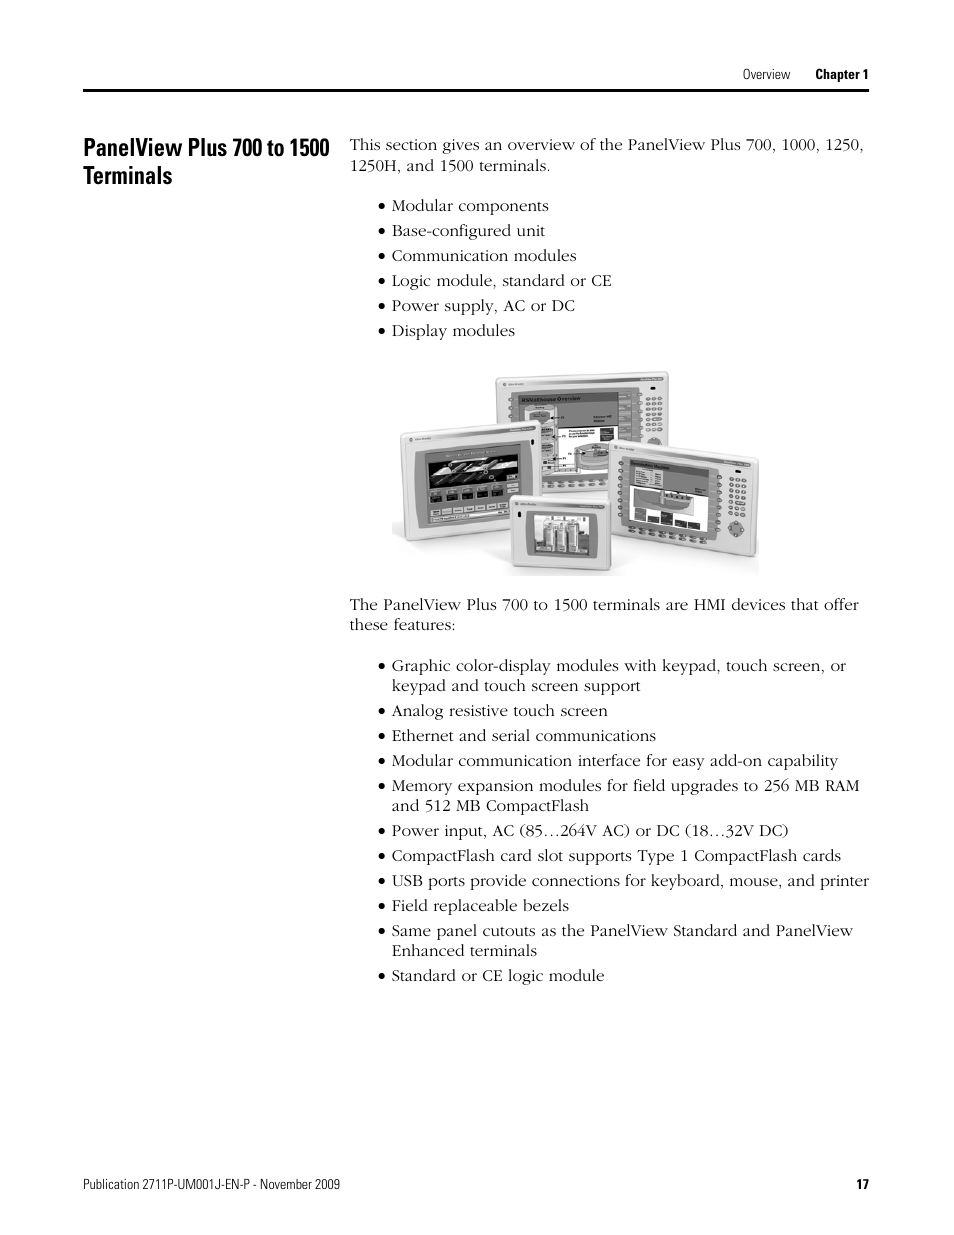 Panelview plus 700 user manual terminals rockwell automation 2711p rh manualsdir com panelview plus 700 to 1500 terminals rockwell automation 2711p panelview plus terminal user manual fandeluxe Choice Image